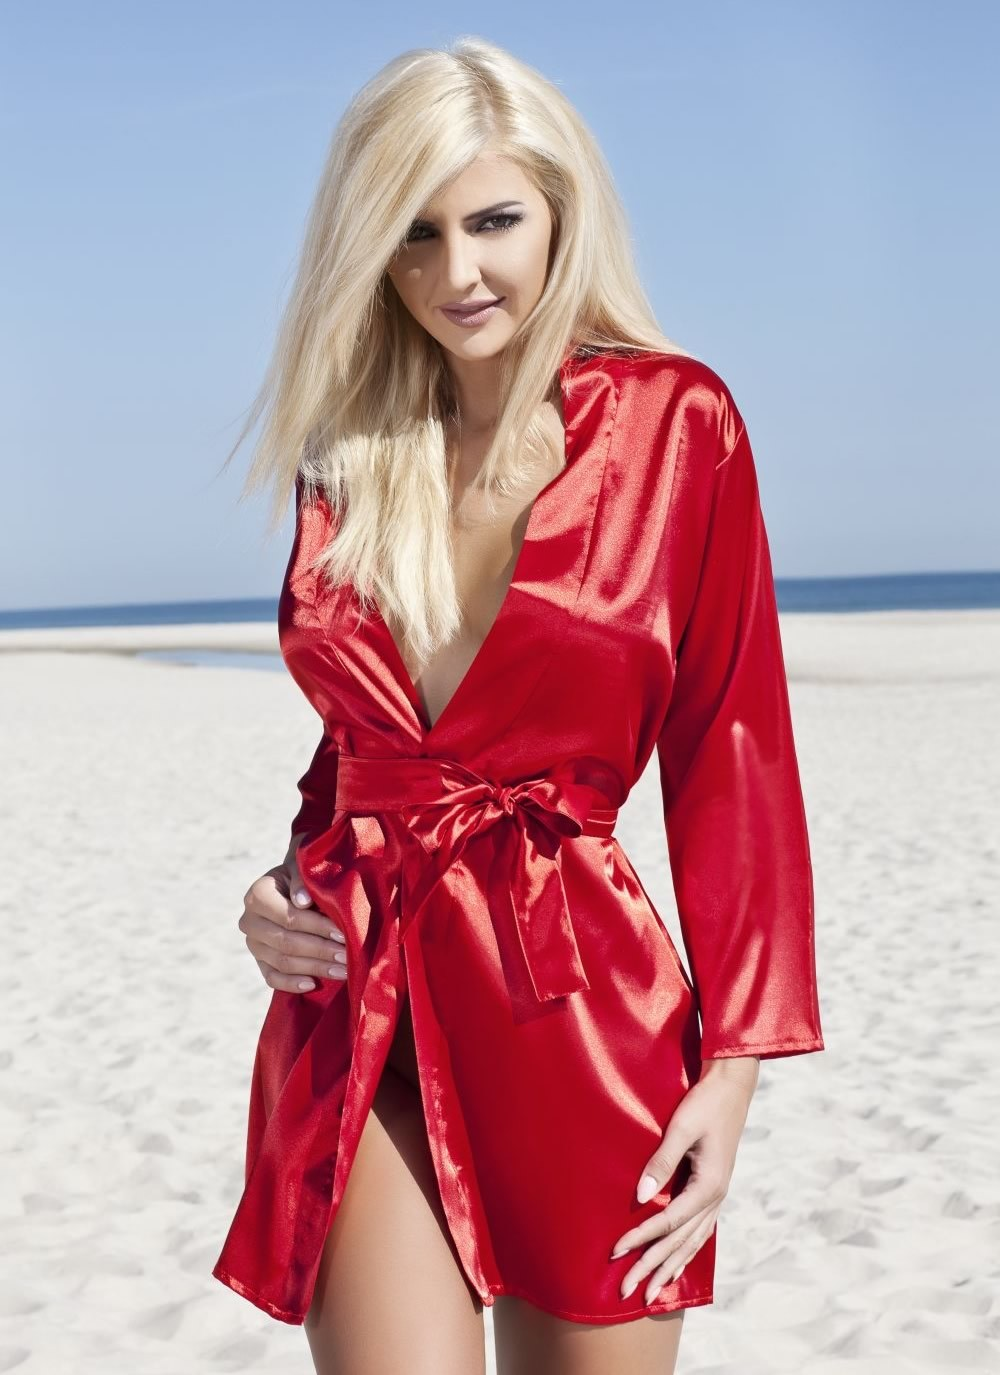 Karen Satin Robe - red